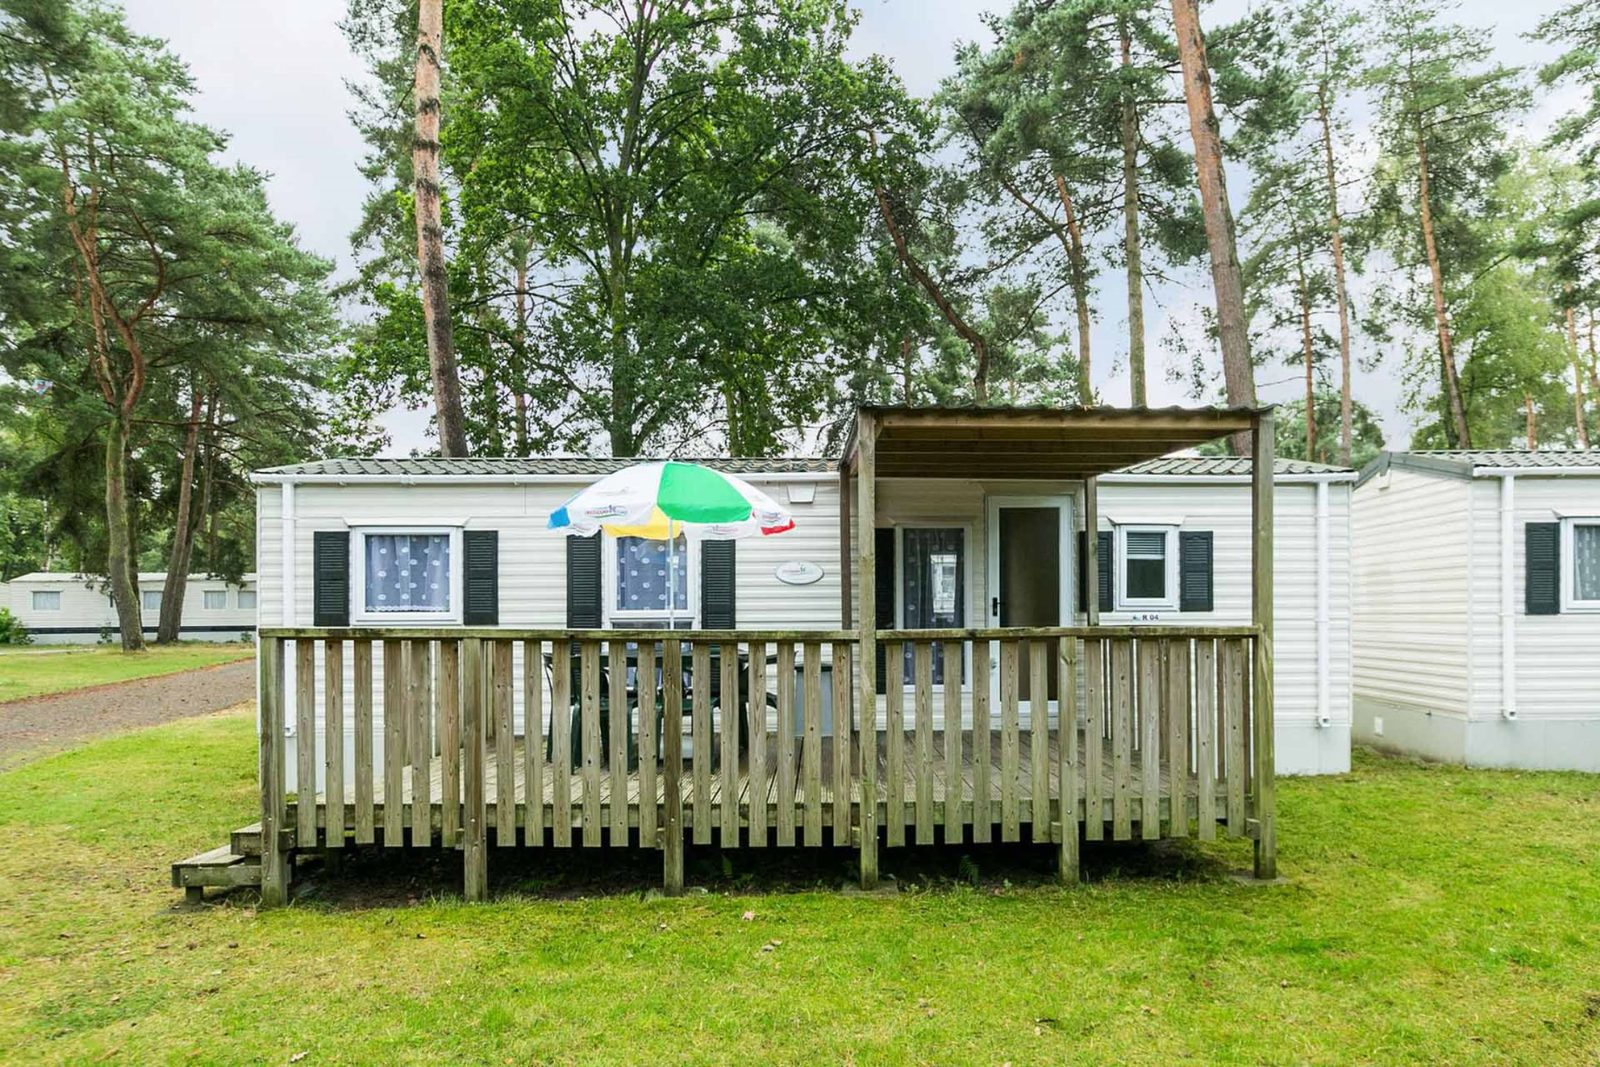 EuroParcs Resort De Kempen accommodation booking